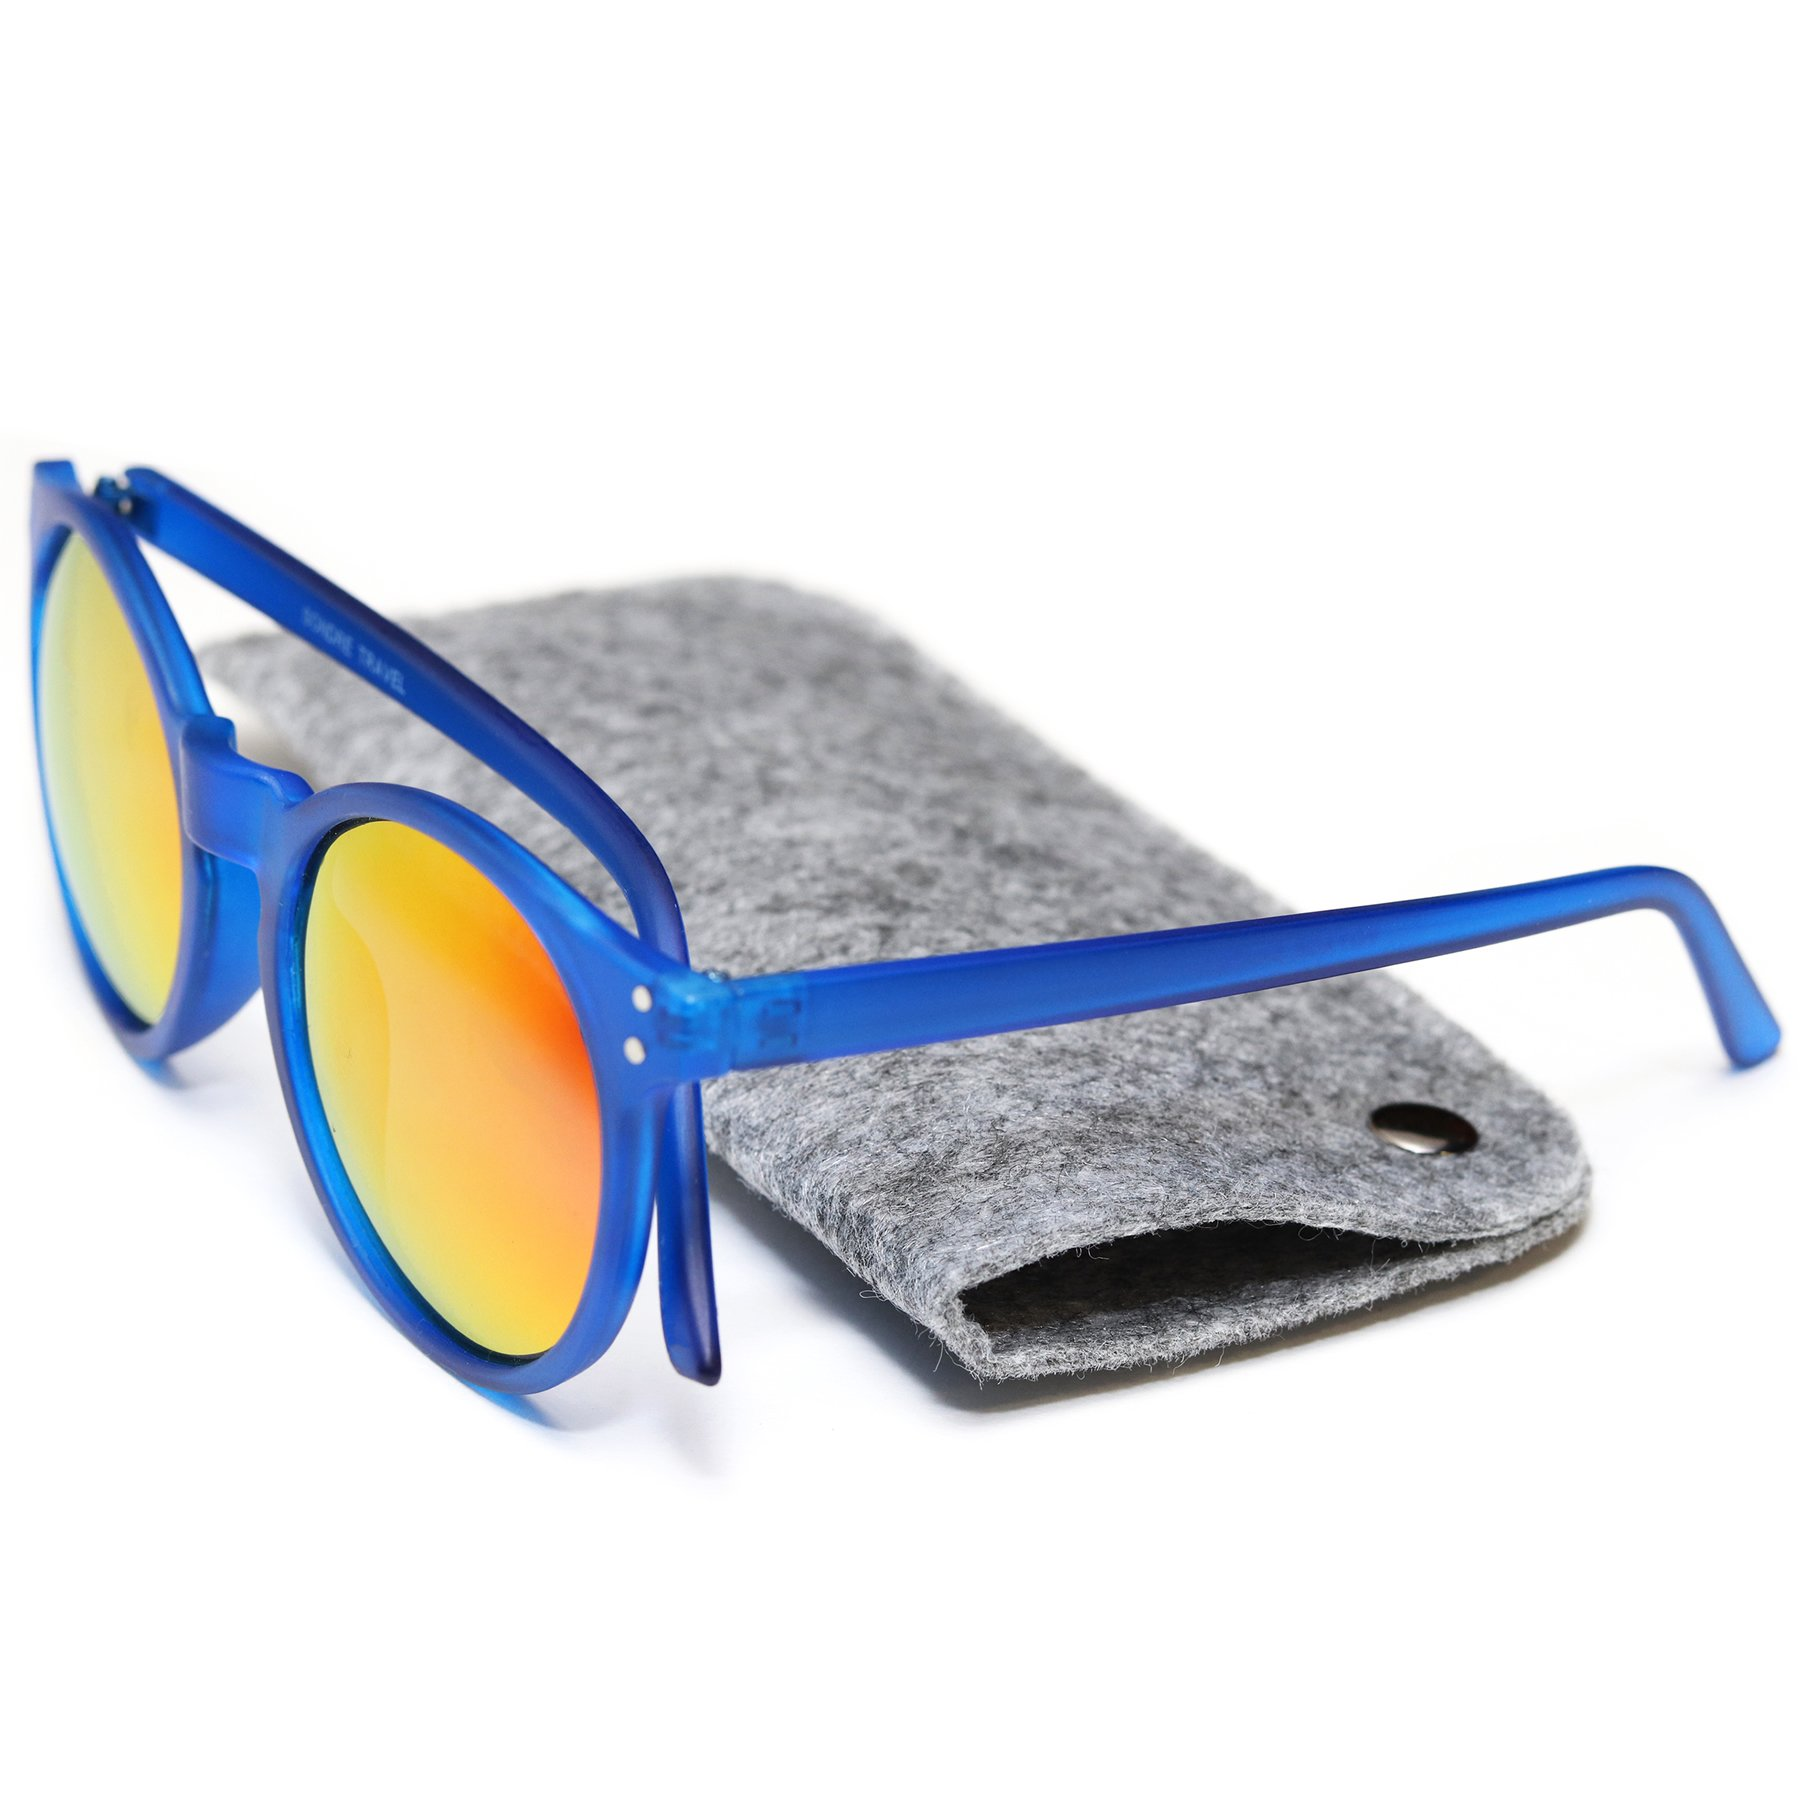 Voyage Shades - Premium Polarized Sunglasses with Felt Carrying Case (Frosted Blue)